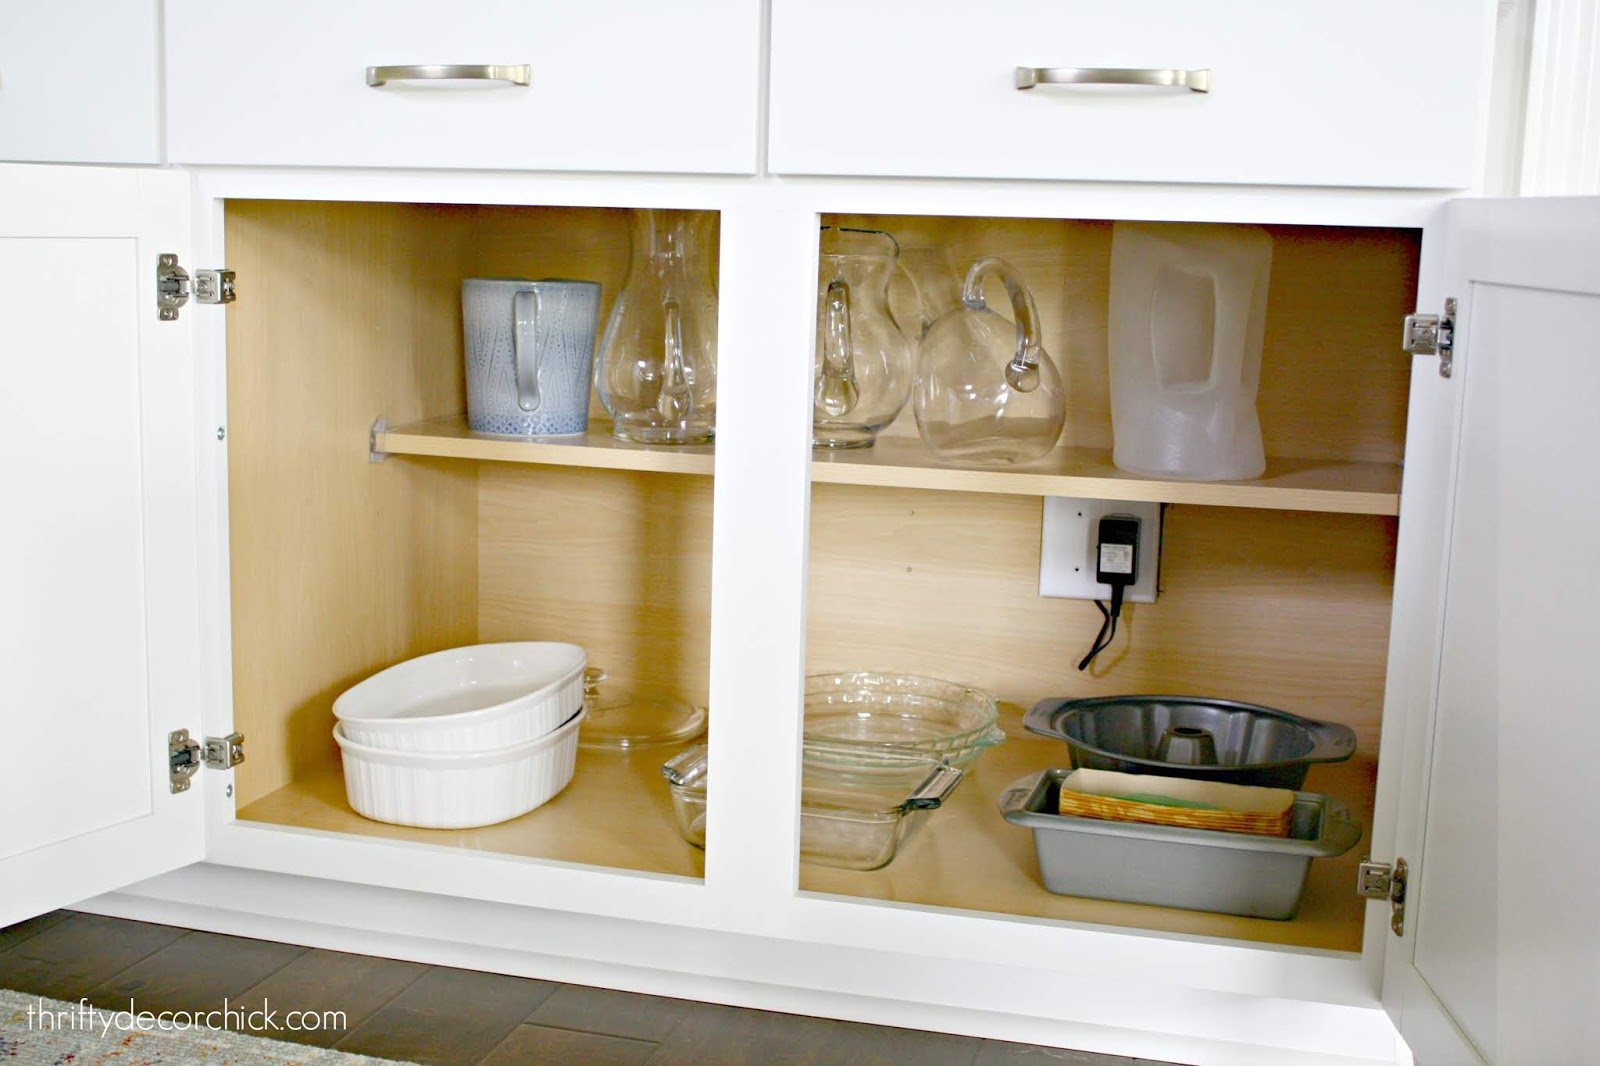 Decluttered and organized lower cabinets